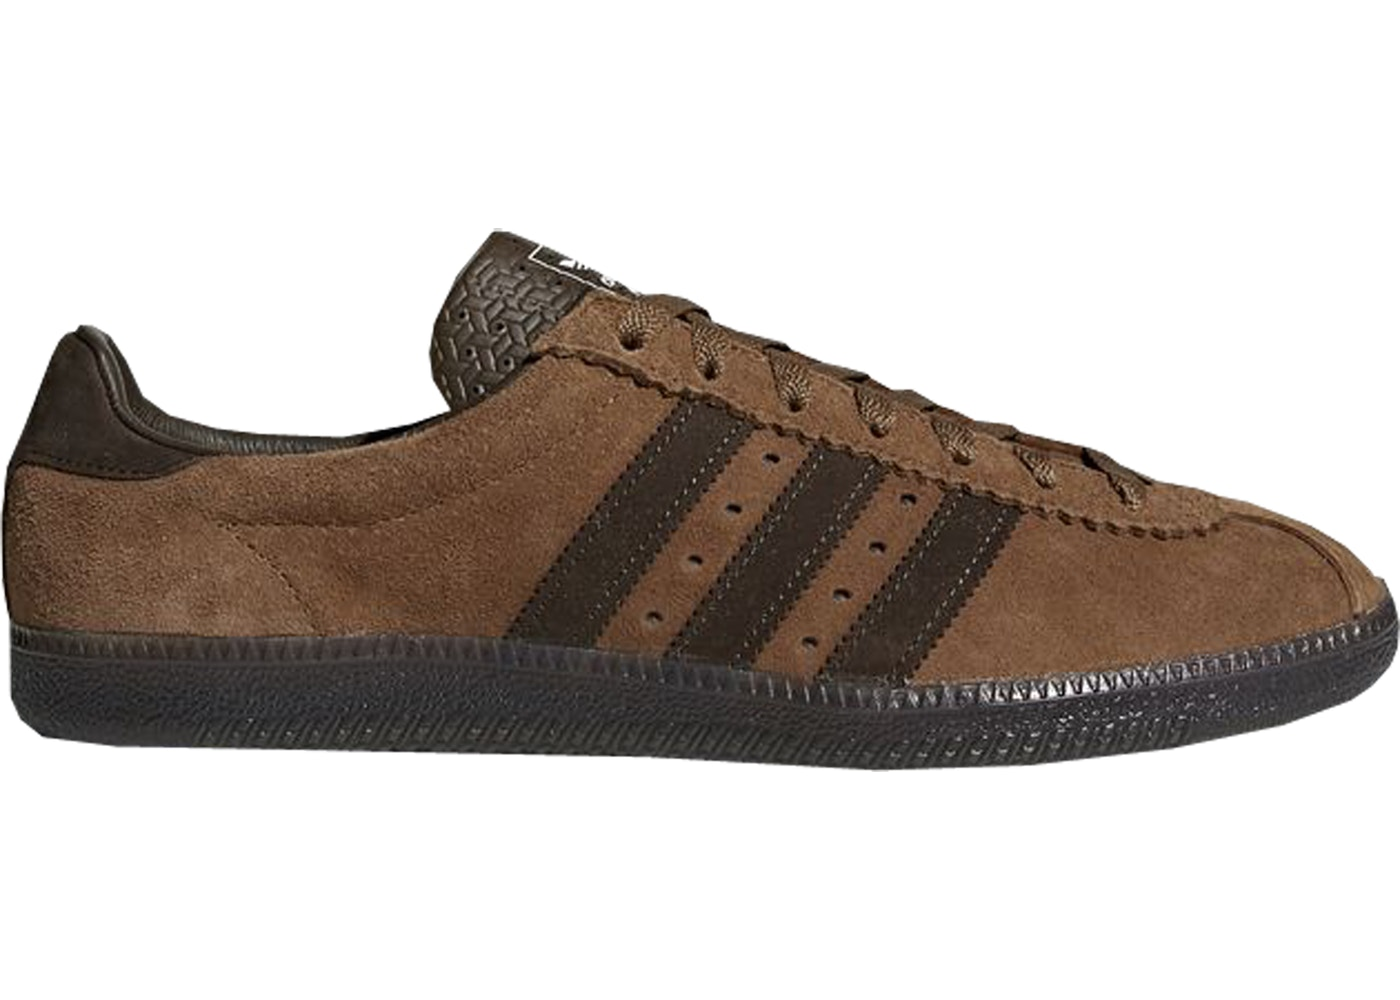 outlet store get cheap really comfortable adidas Spezial Padiham Brown